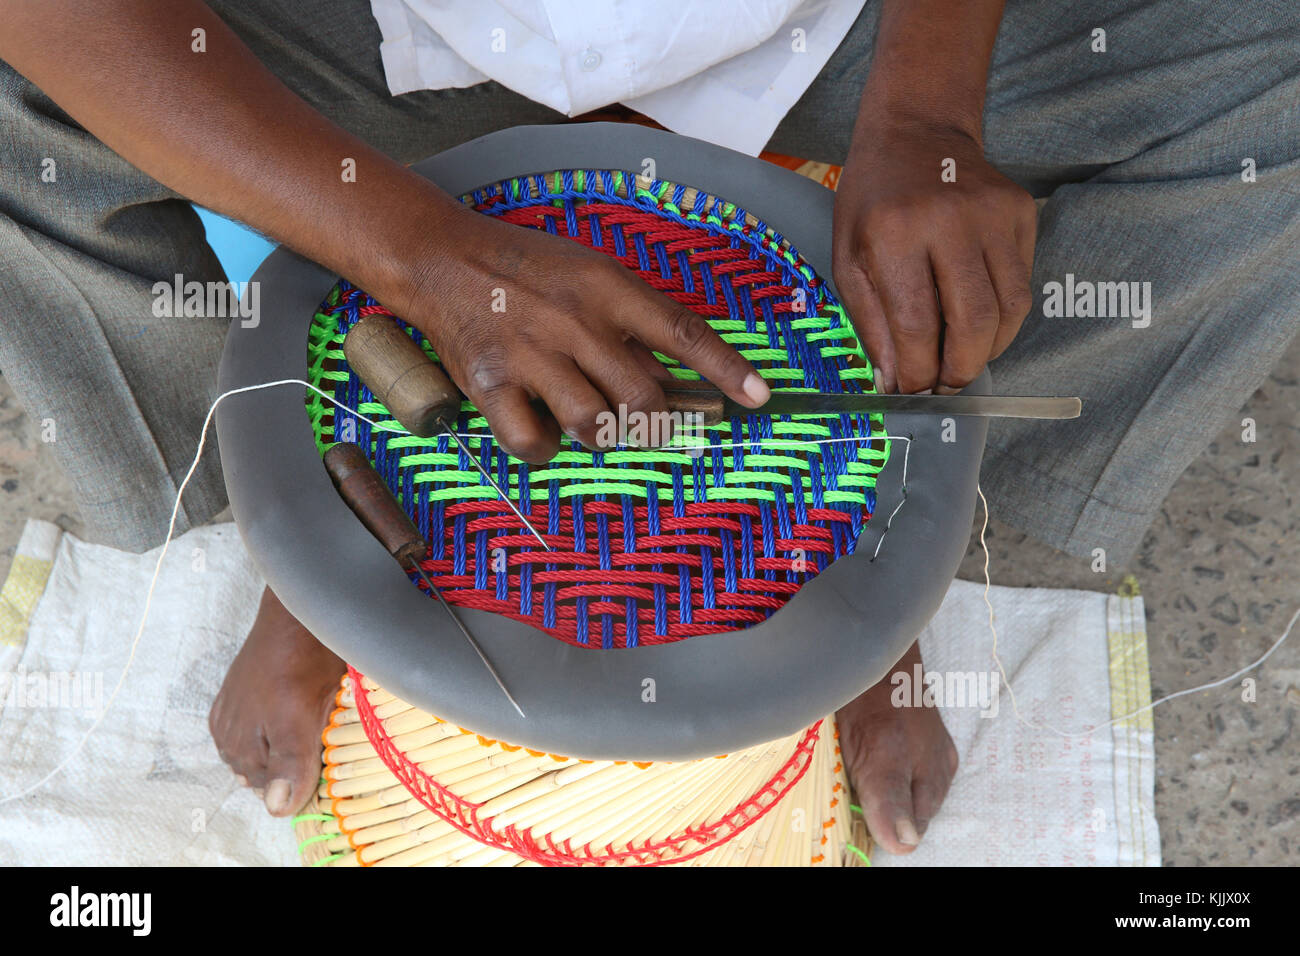 Rajasthan craftsman making a 'muddha', small stool made of reeds and colored string. India. - Stock Image